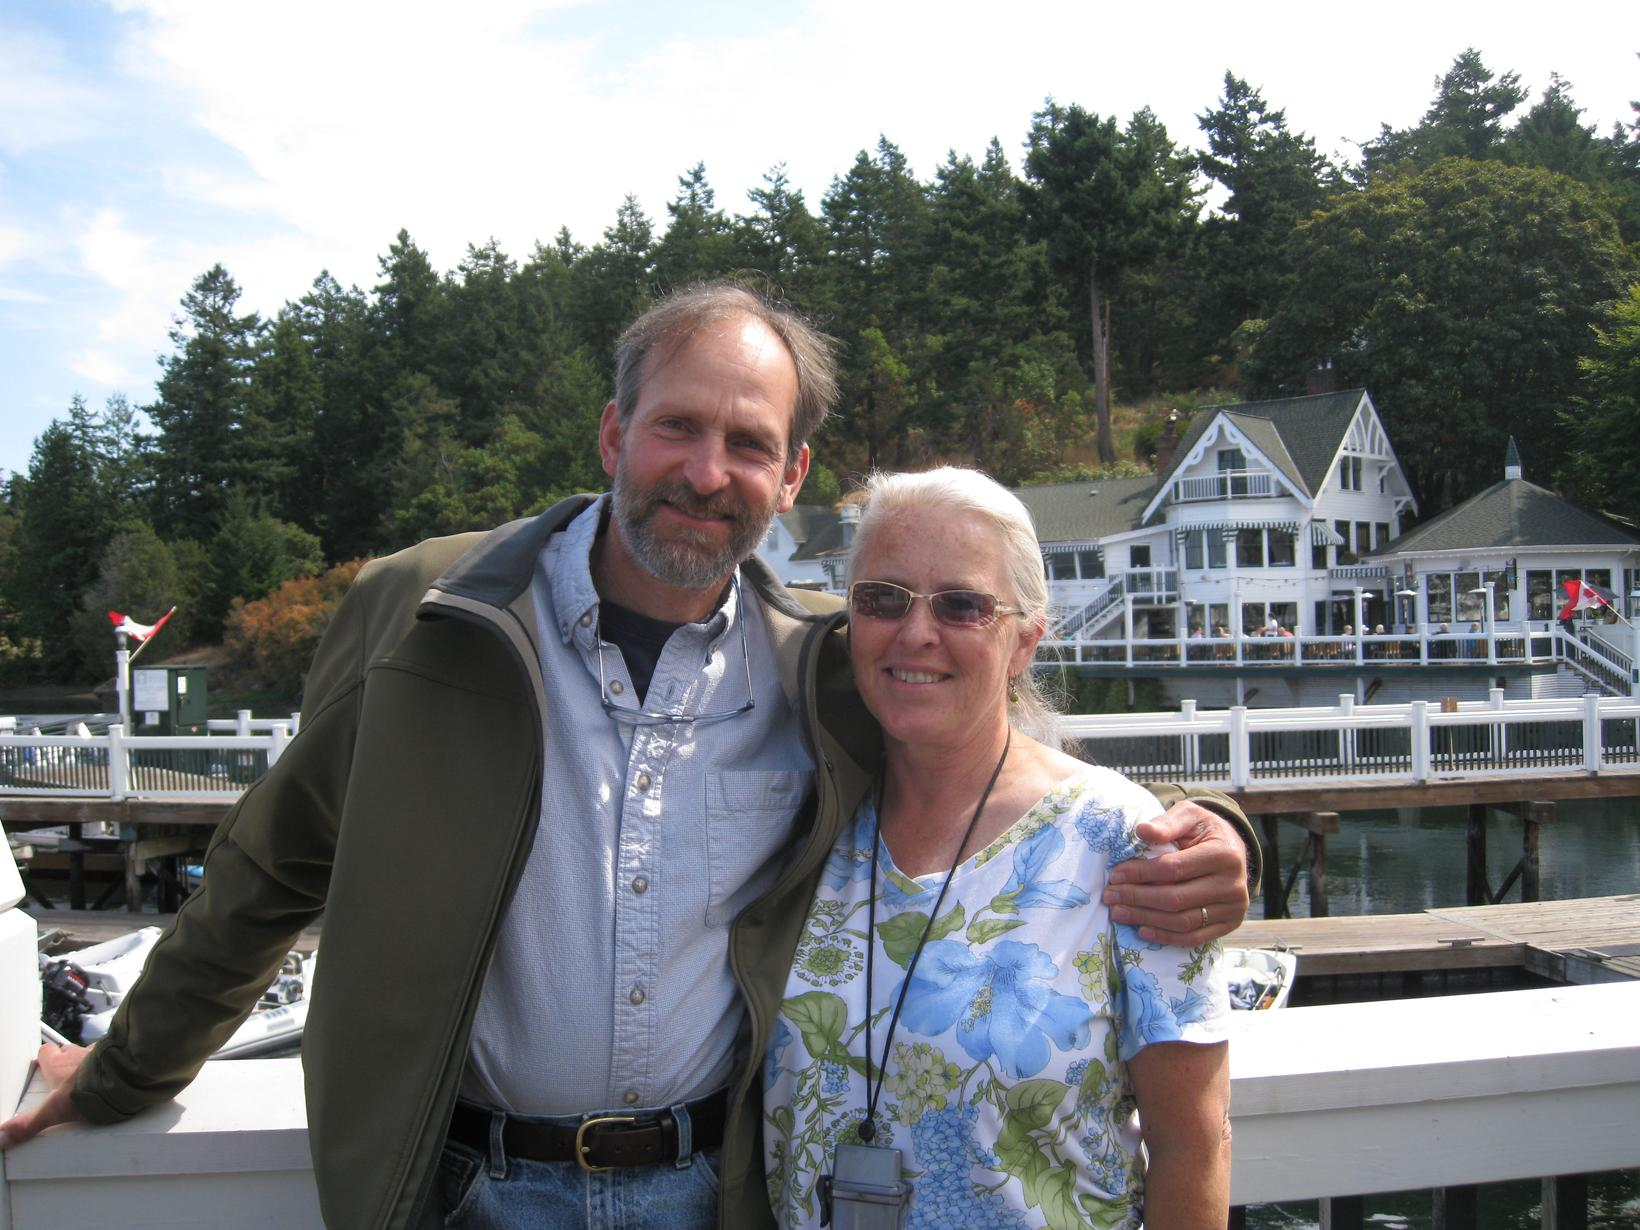 Barbara & fred & Fred from Friday Harbor, Washington, United States